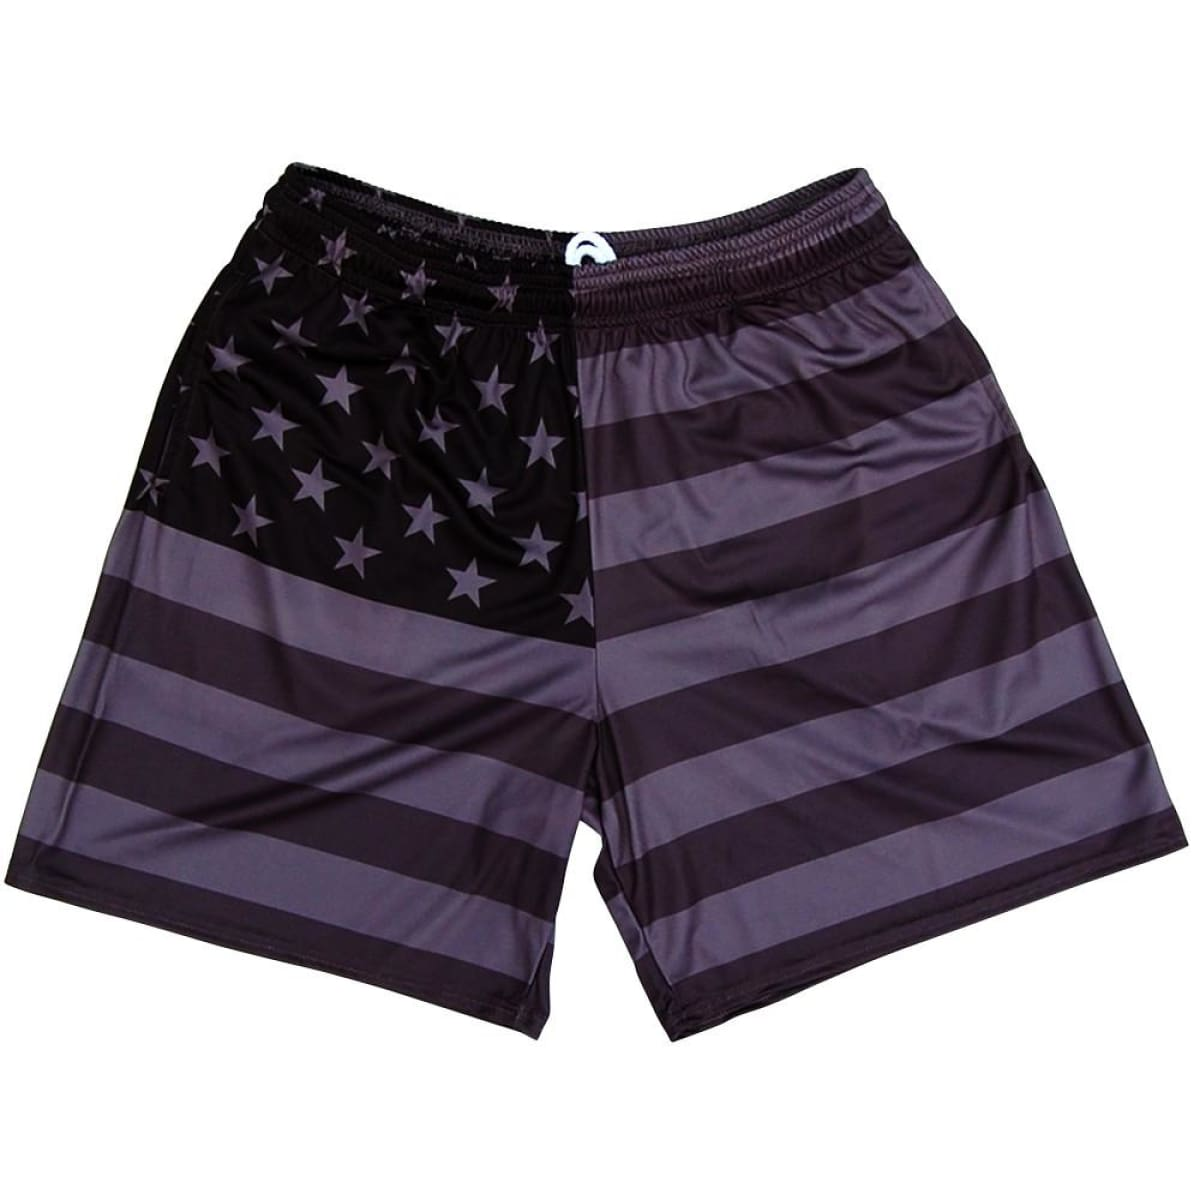 American Flag Black Out Athletic Shorts - Black / Youth X-Small - Athletic Shorts